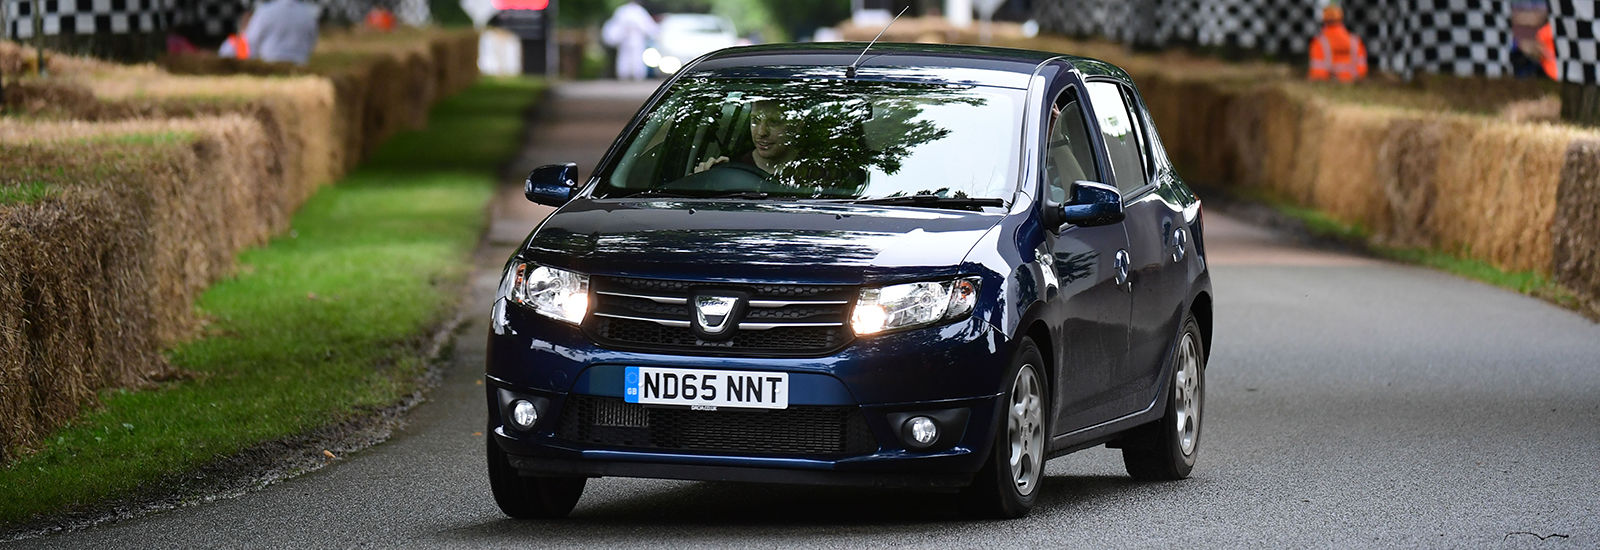 The 10 cheapest cars to insure for young drivers revealed